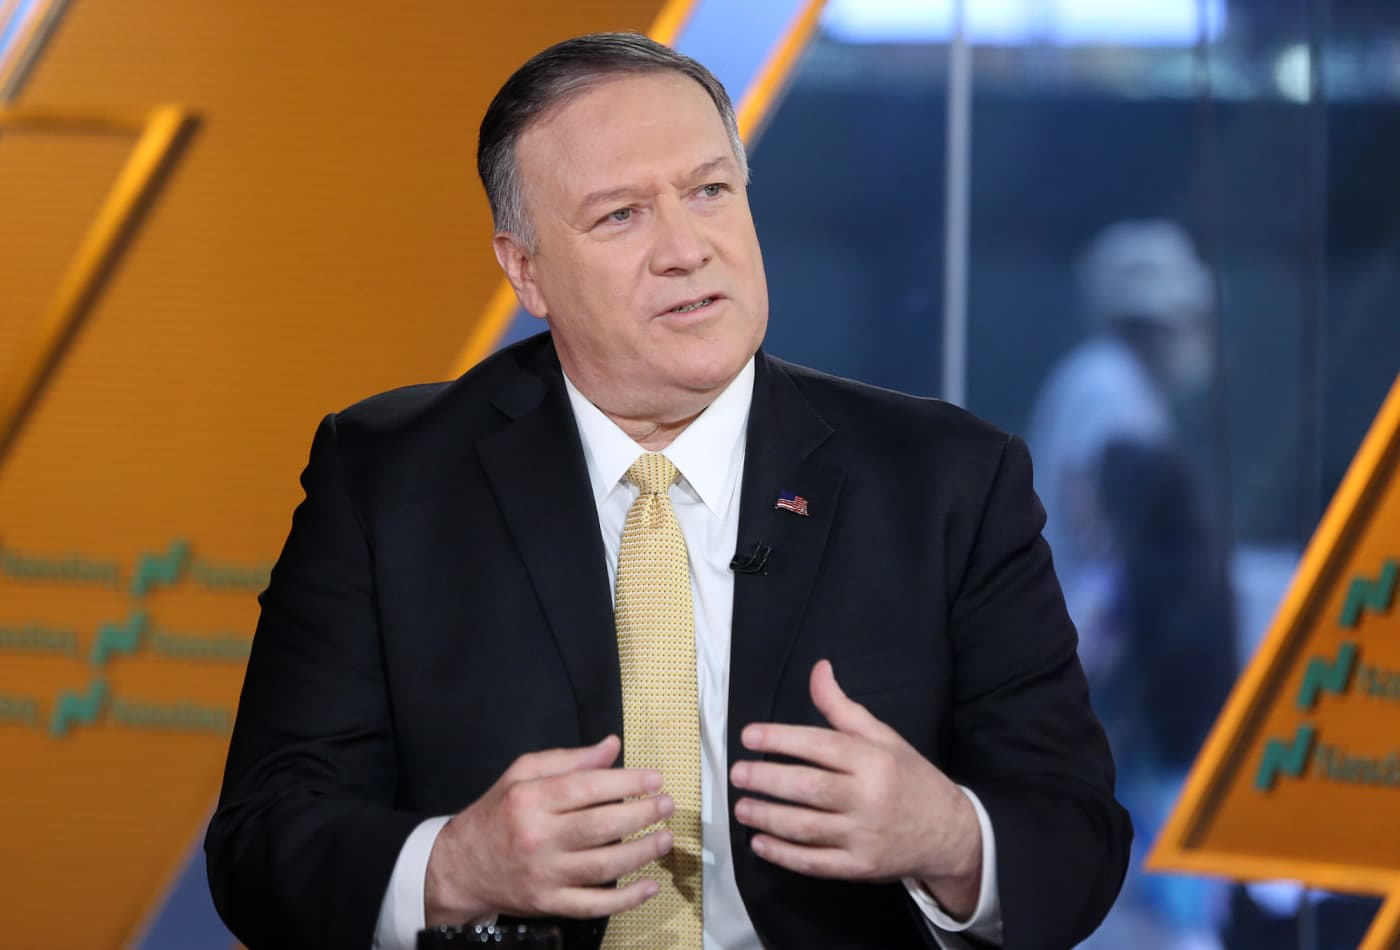 Watch CNBC's full interview with Secretary of State Mike Pompeo